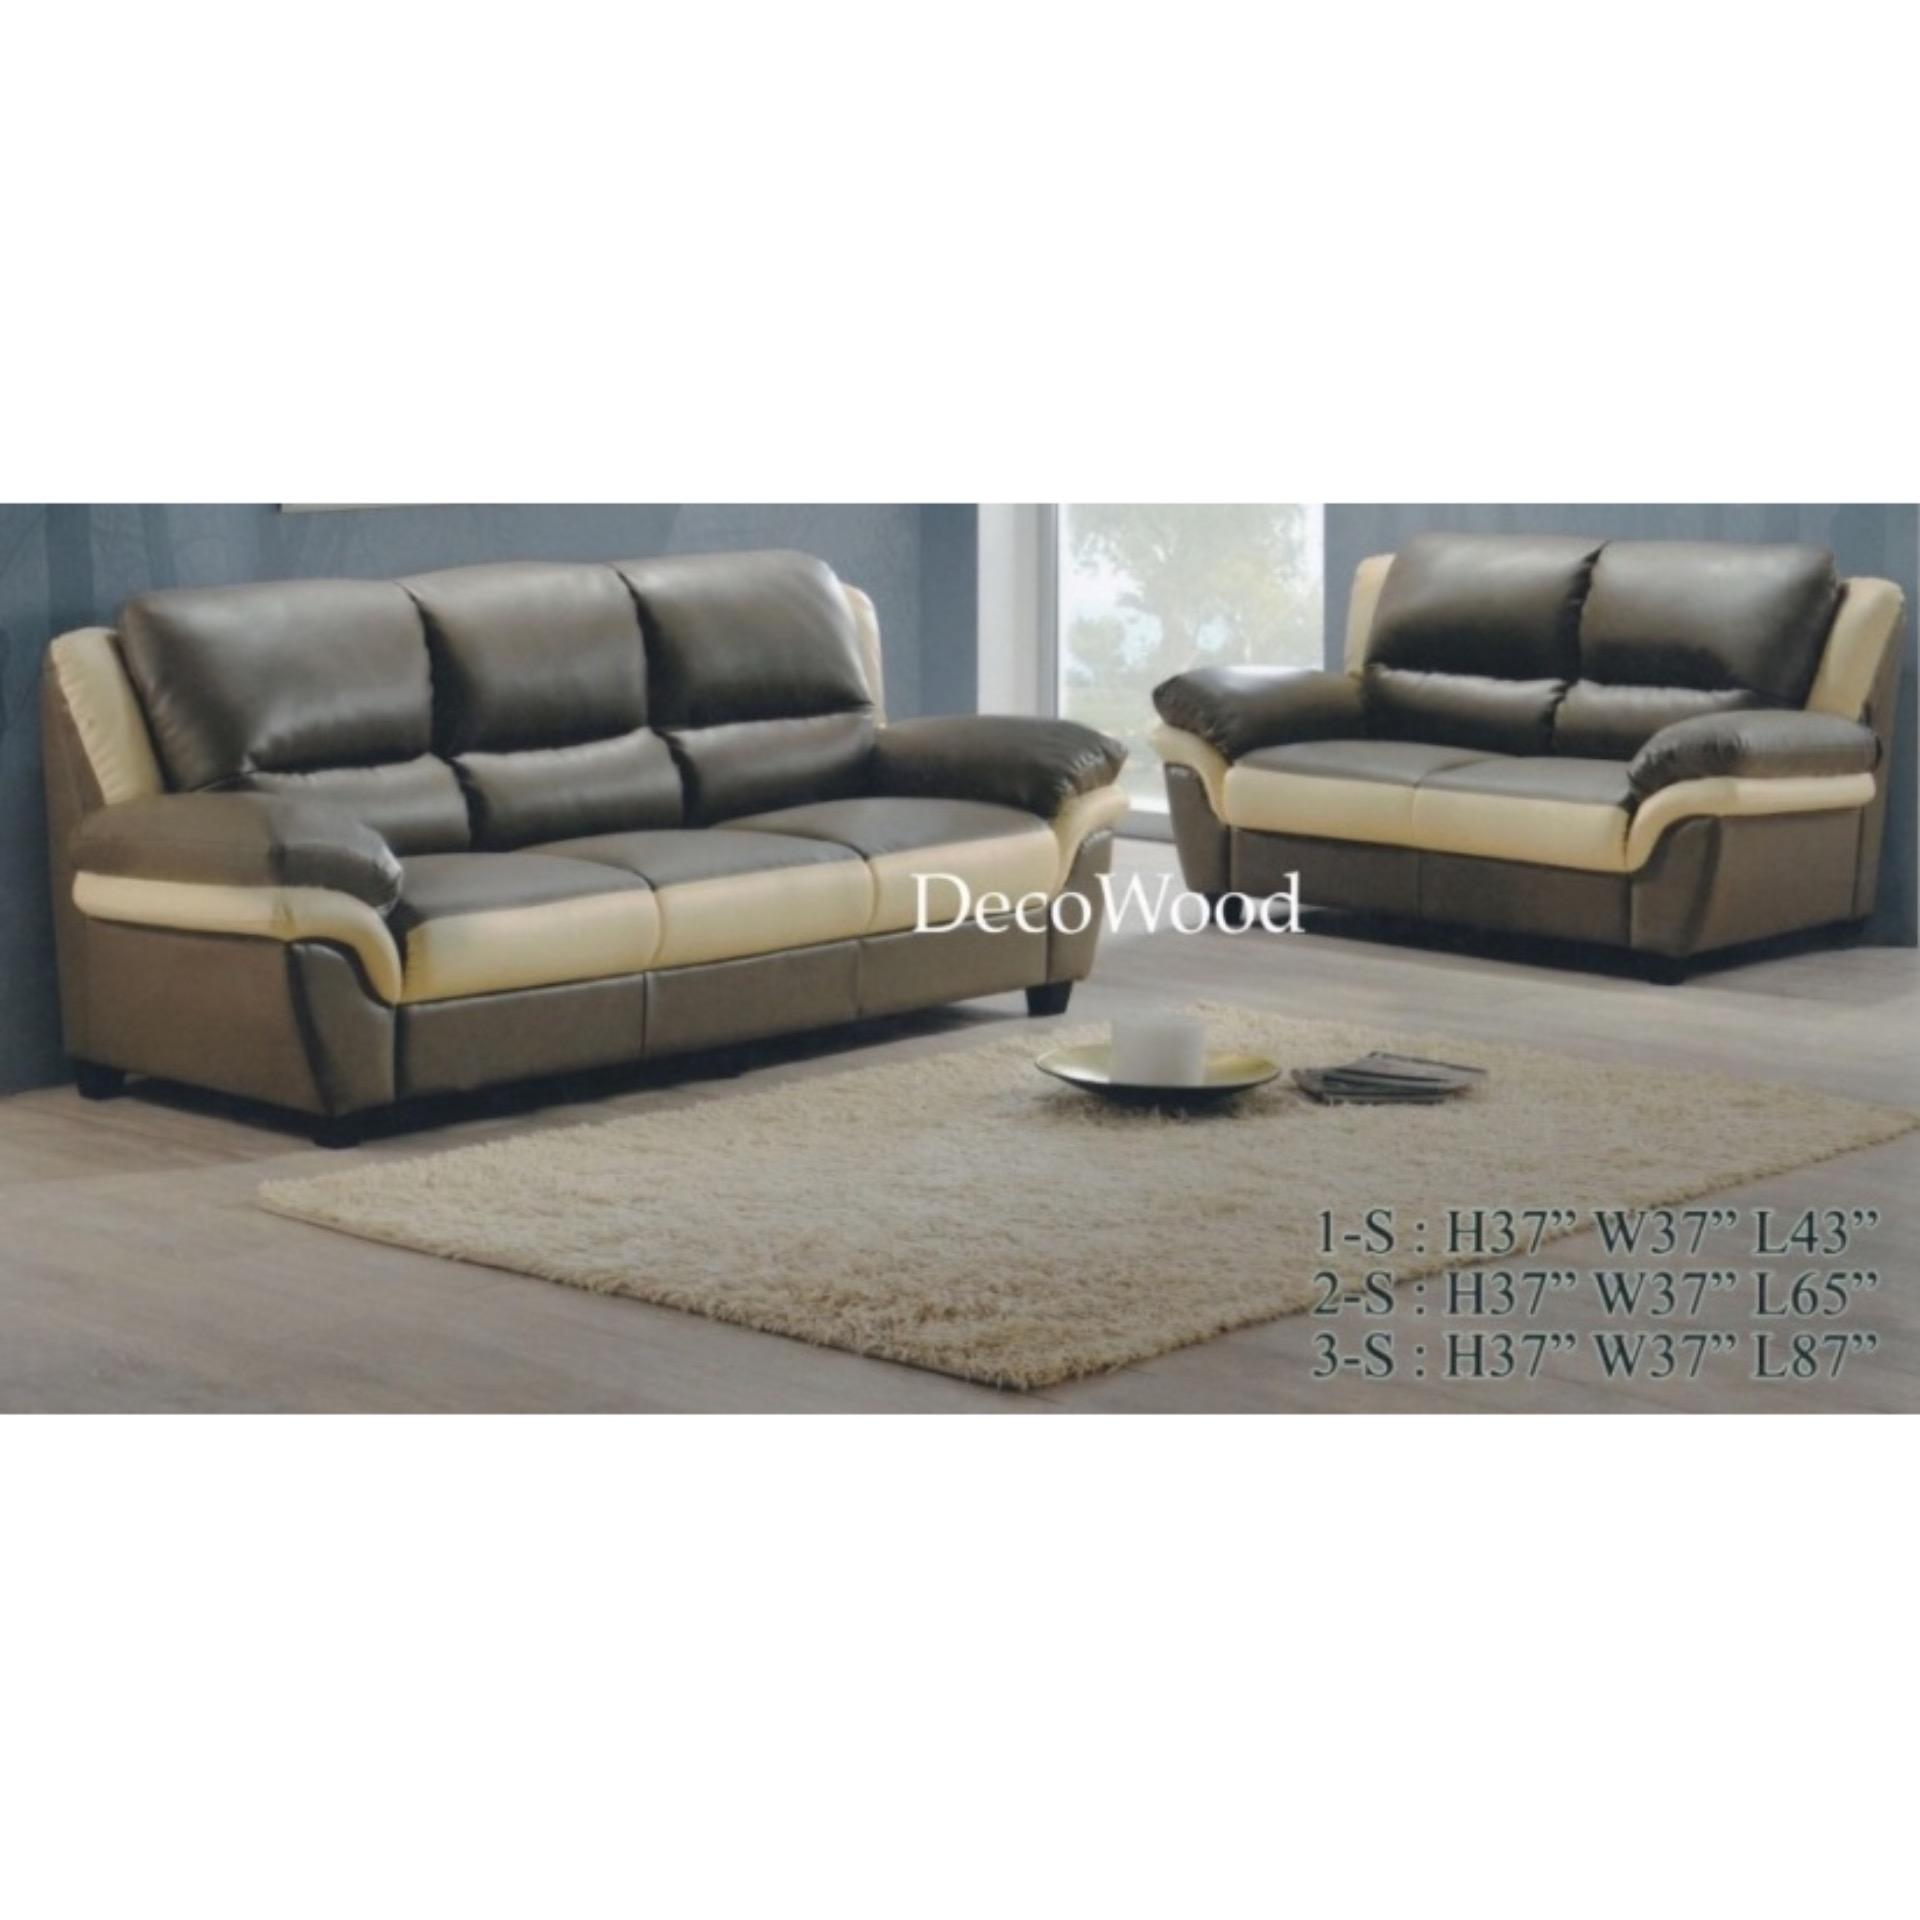 Sofa 2+3 Seater Fully Leather Sofa/Lounge Chair/Relax Sofa/Relax Chair